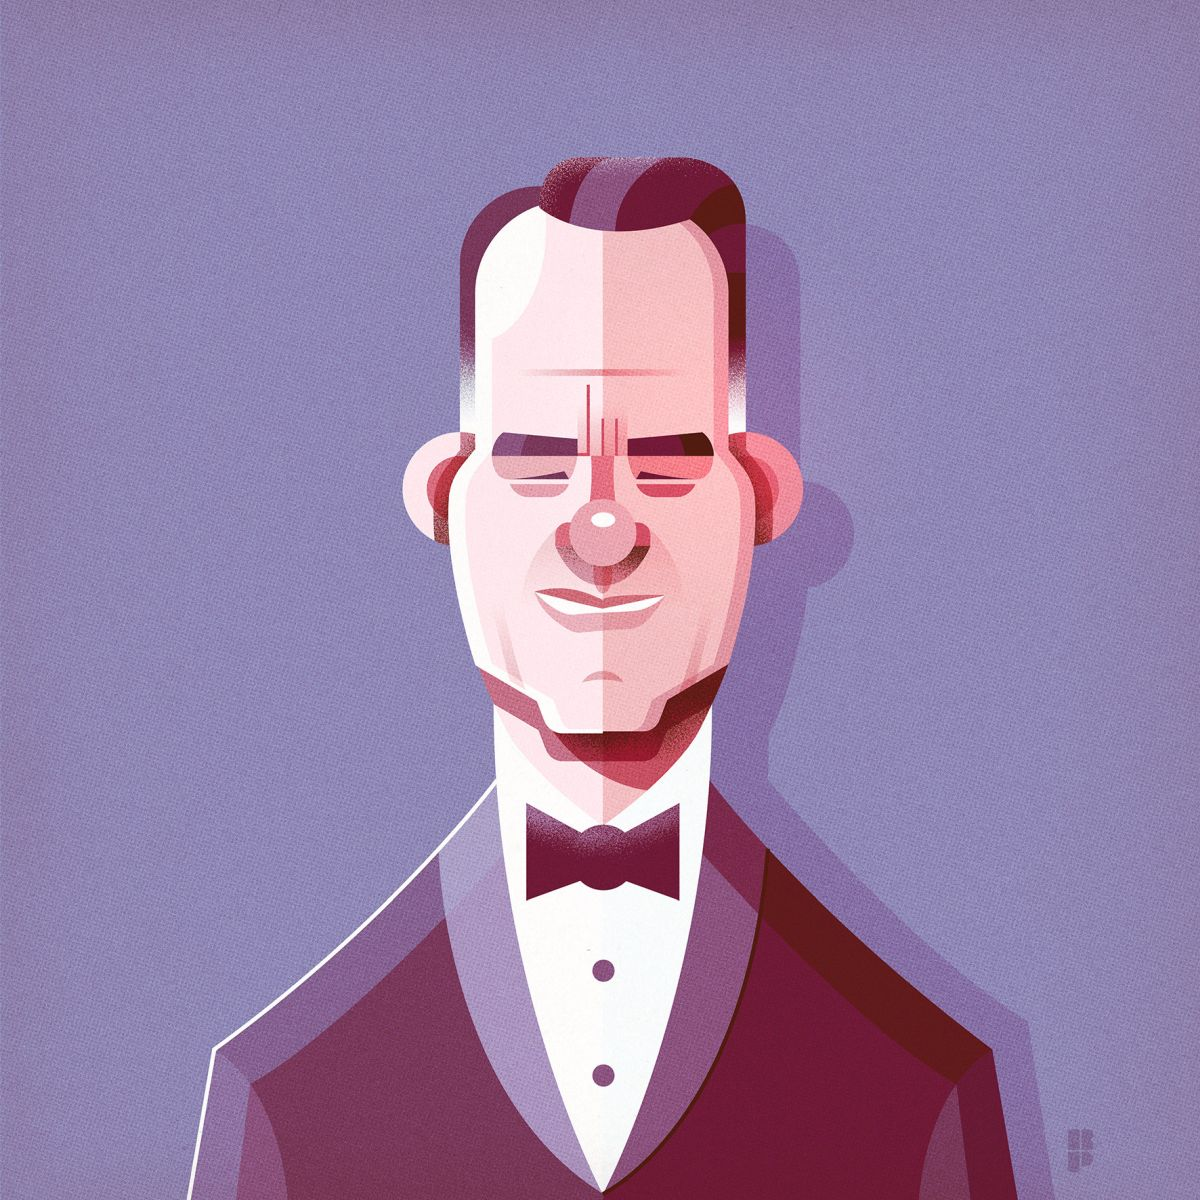 illustrated character portrait by ricardo polo